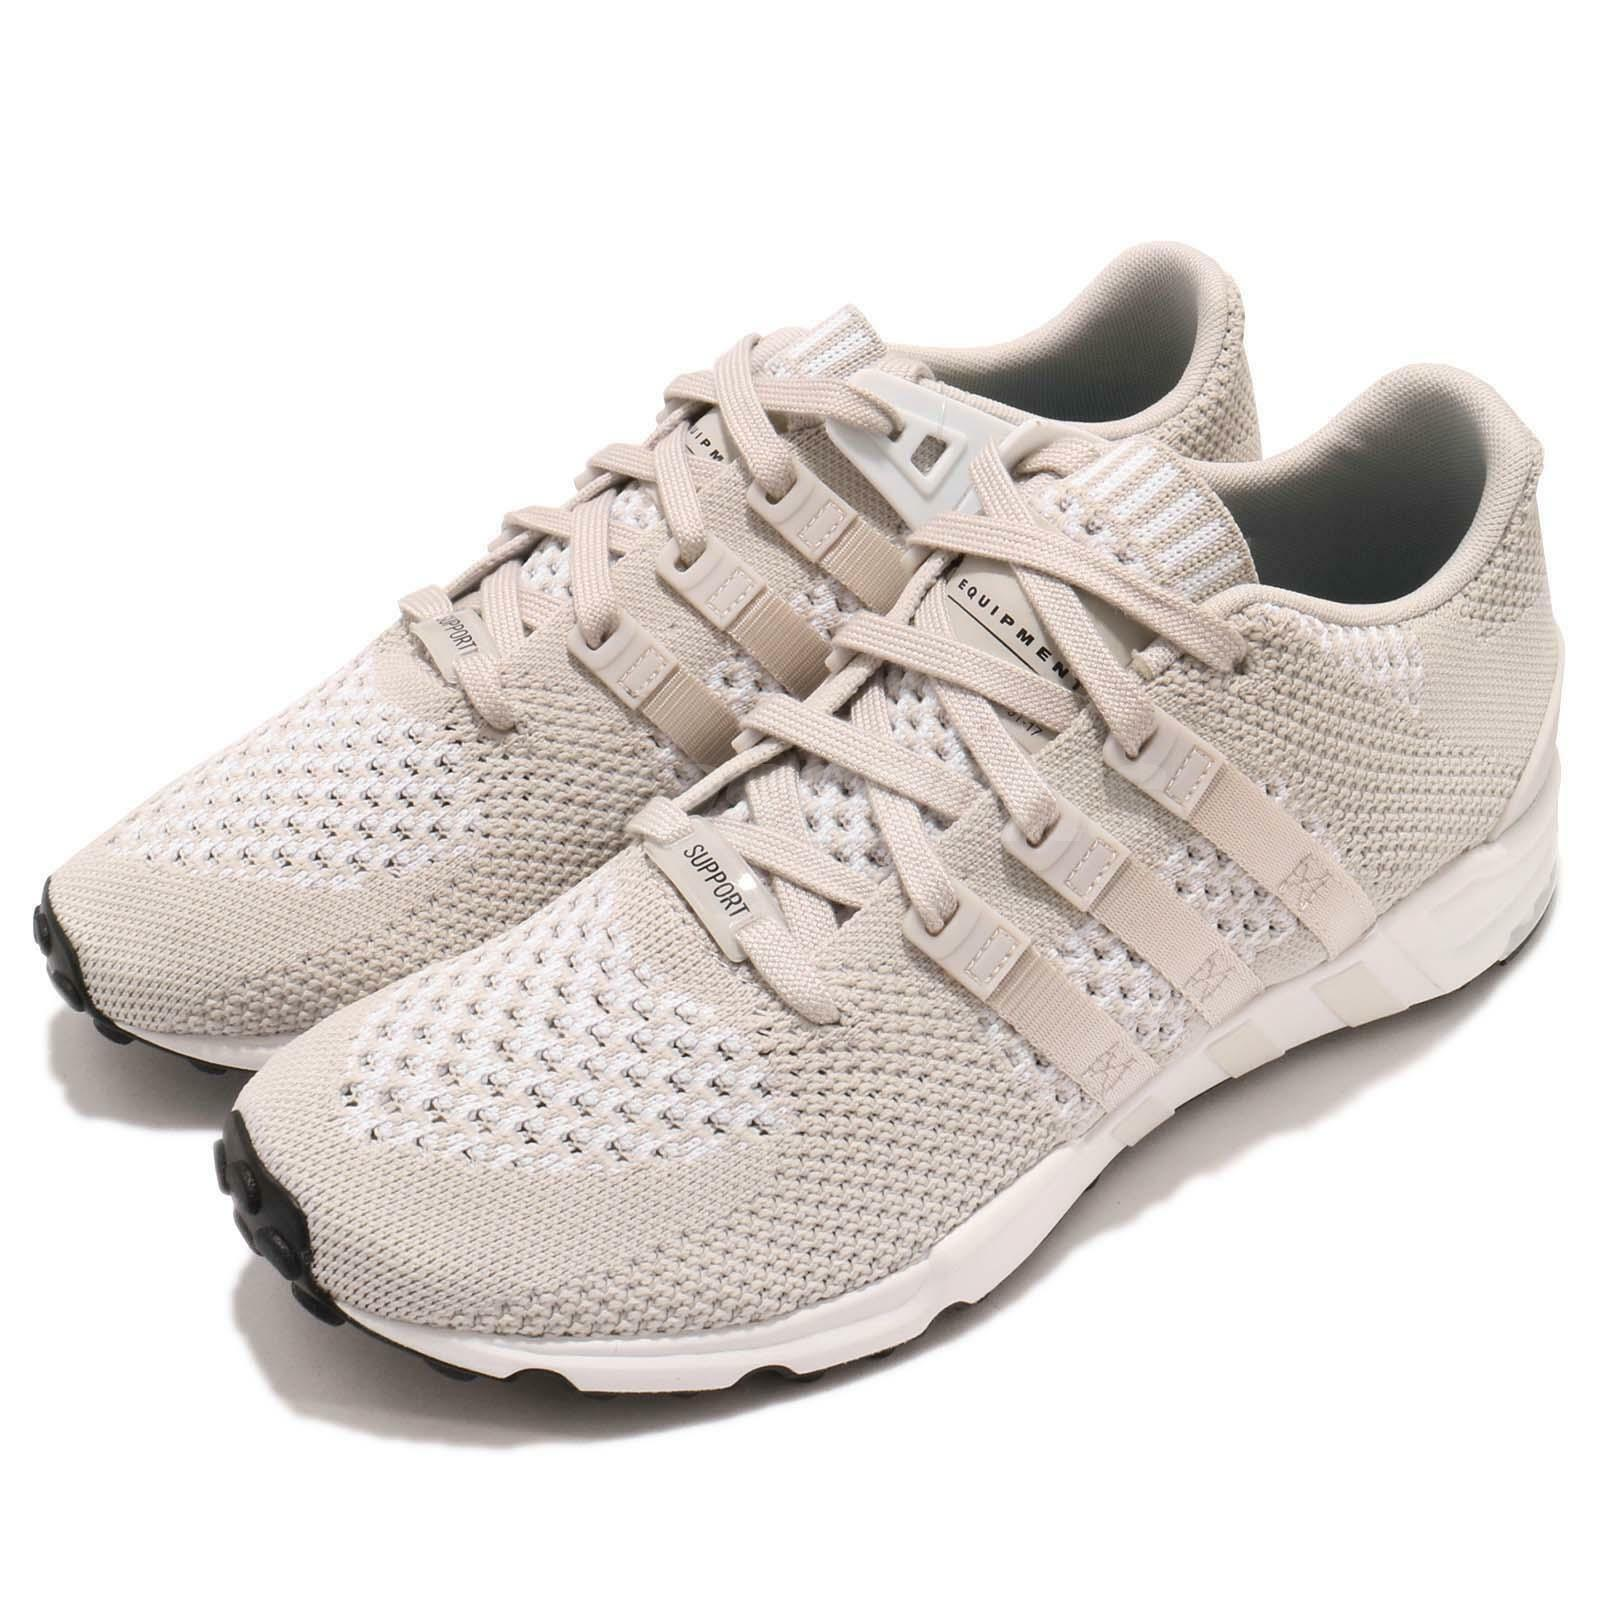 Adidas EQT Support RF PK Equipment Primeknit Pearl Grey White Men shoes BY9604